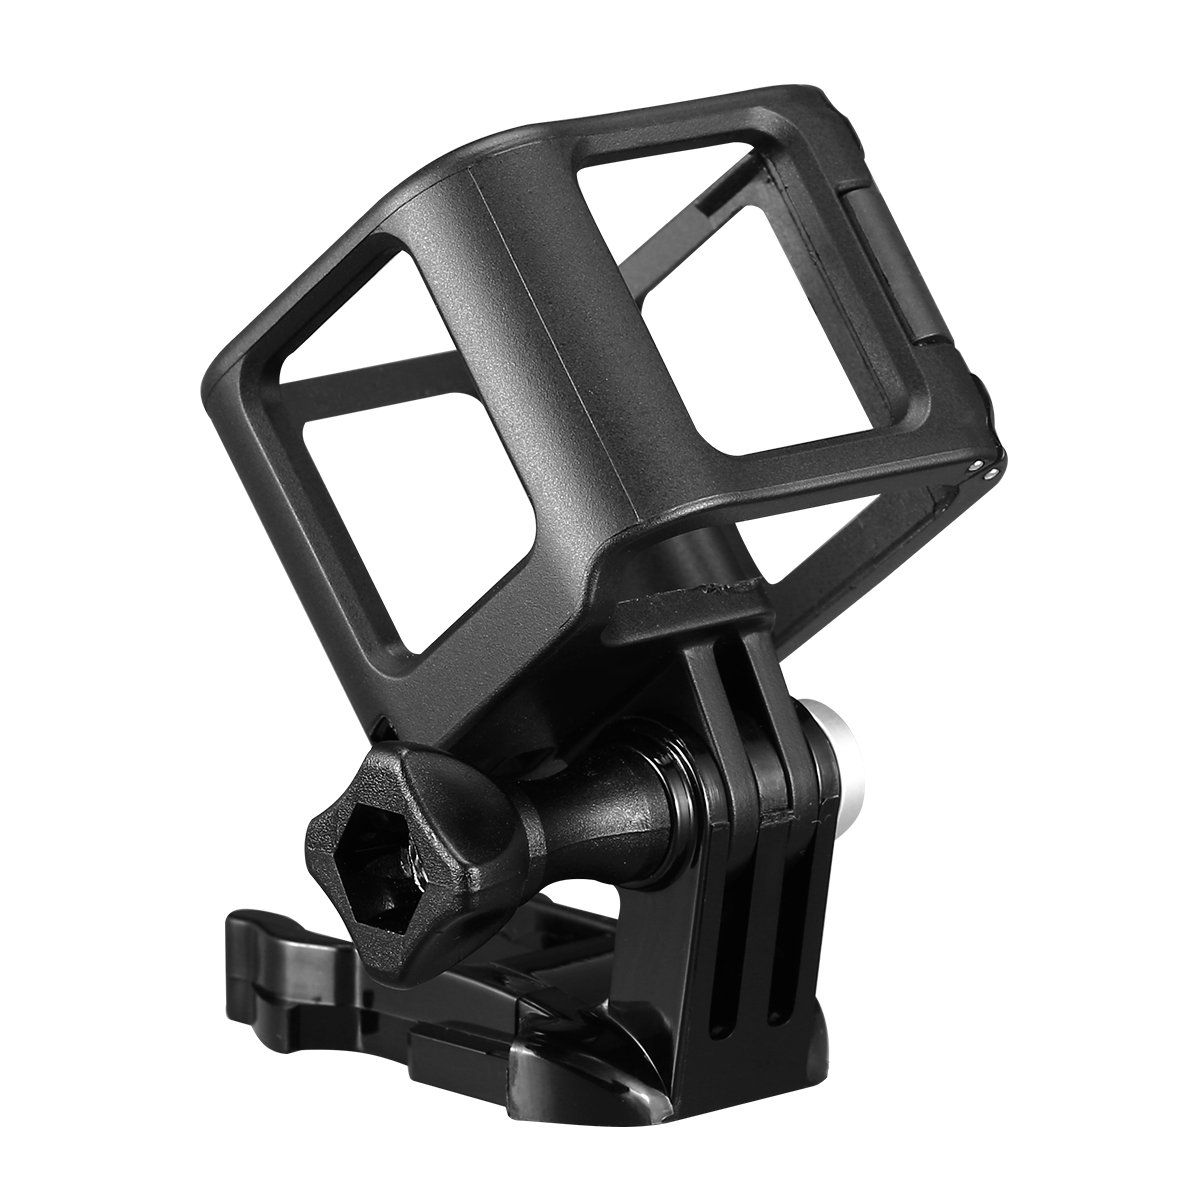 Taisioner 180 Degree Adjustable Protective Housing Case for GoPro Hero5 Session Accessories